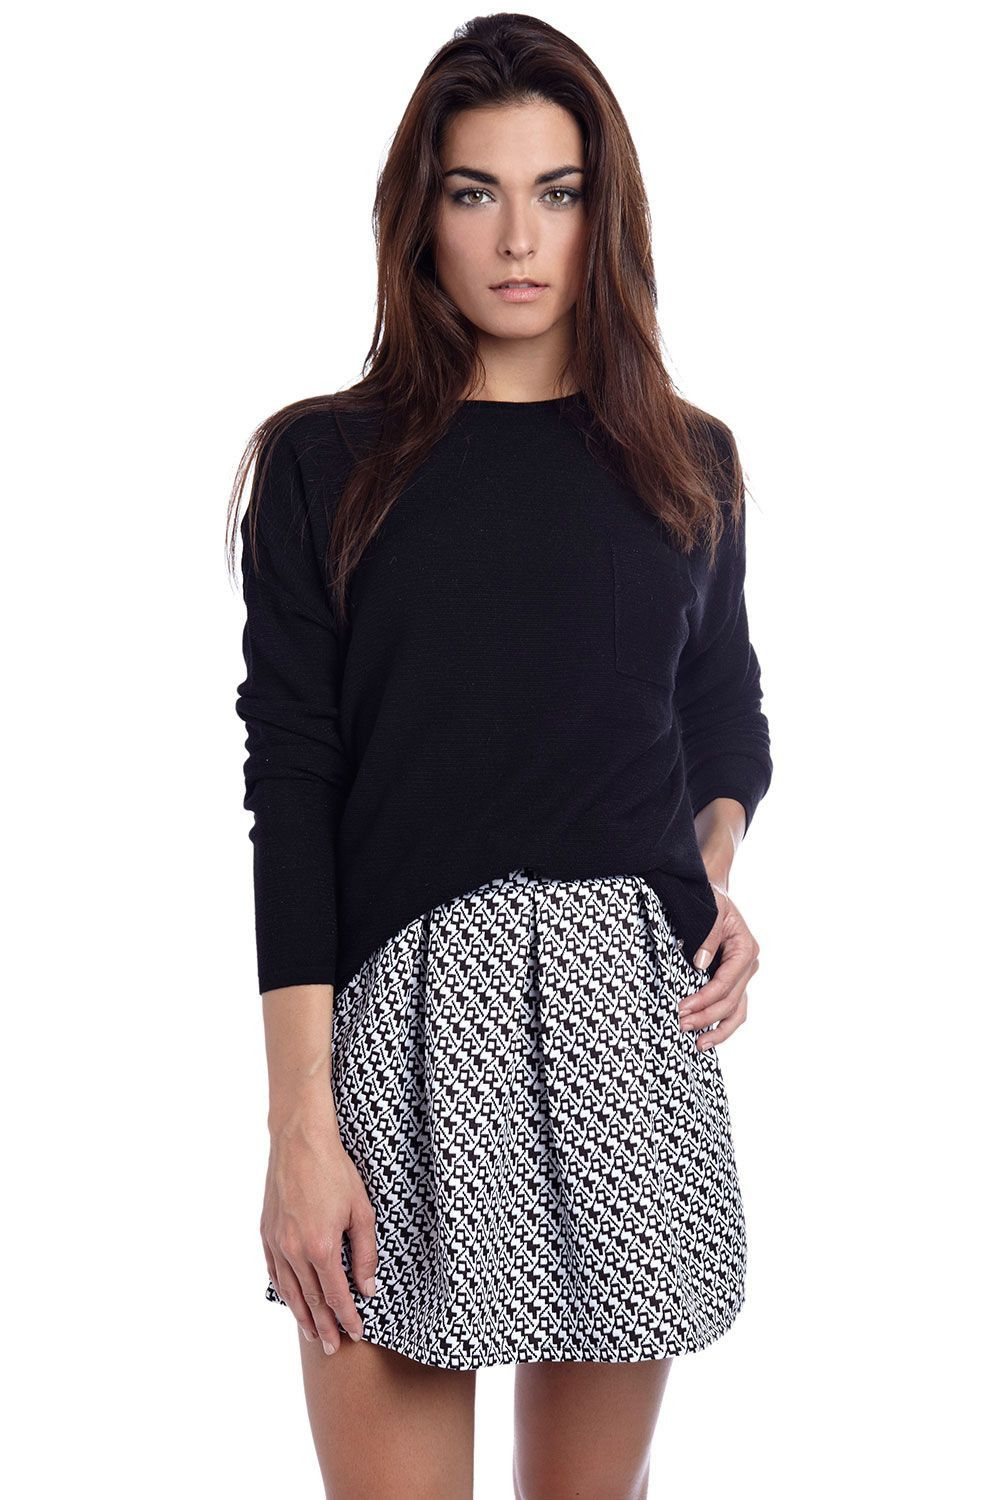 Black sparkle sweater with pocket